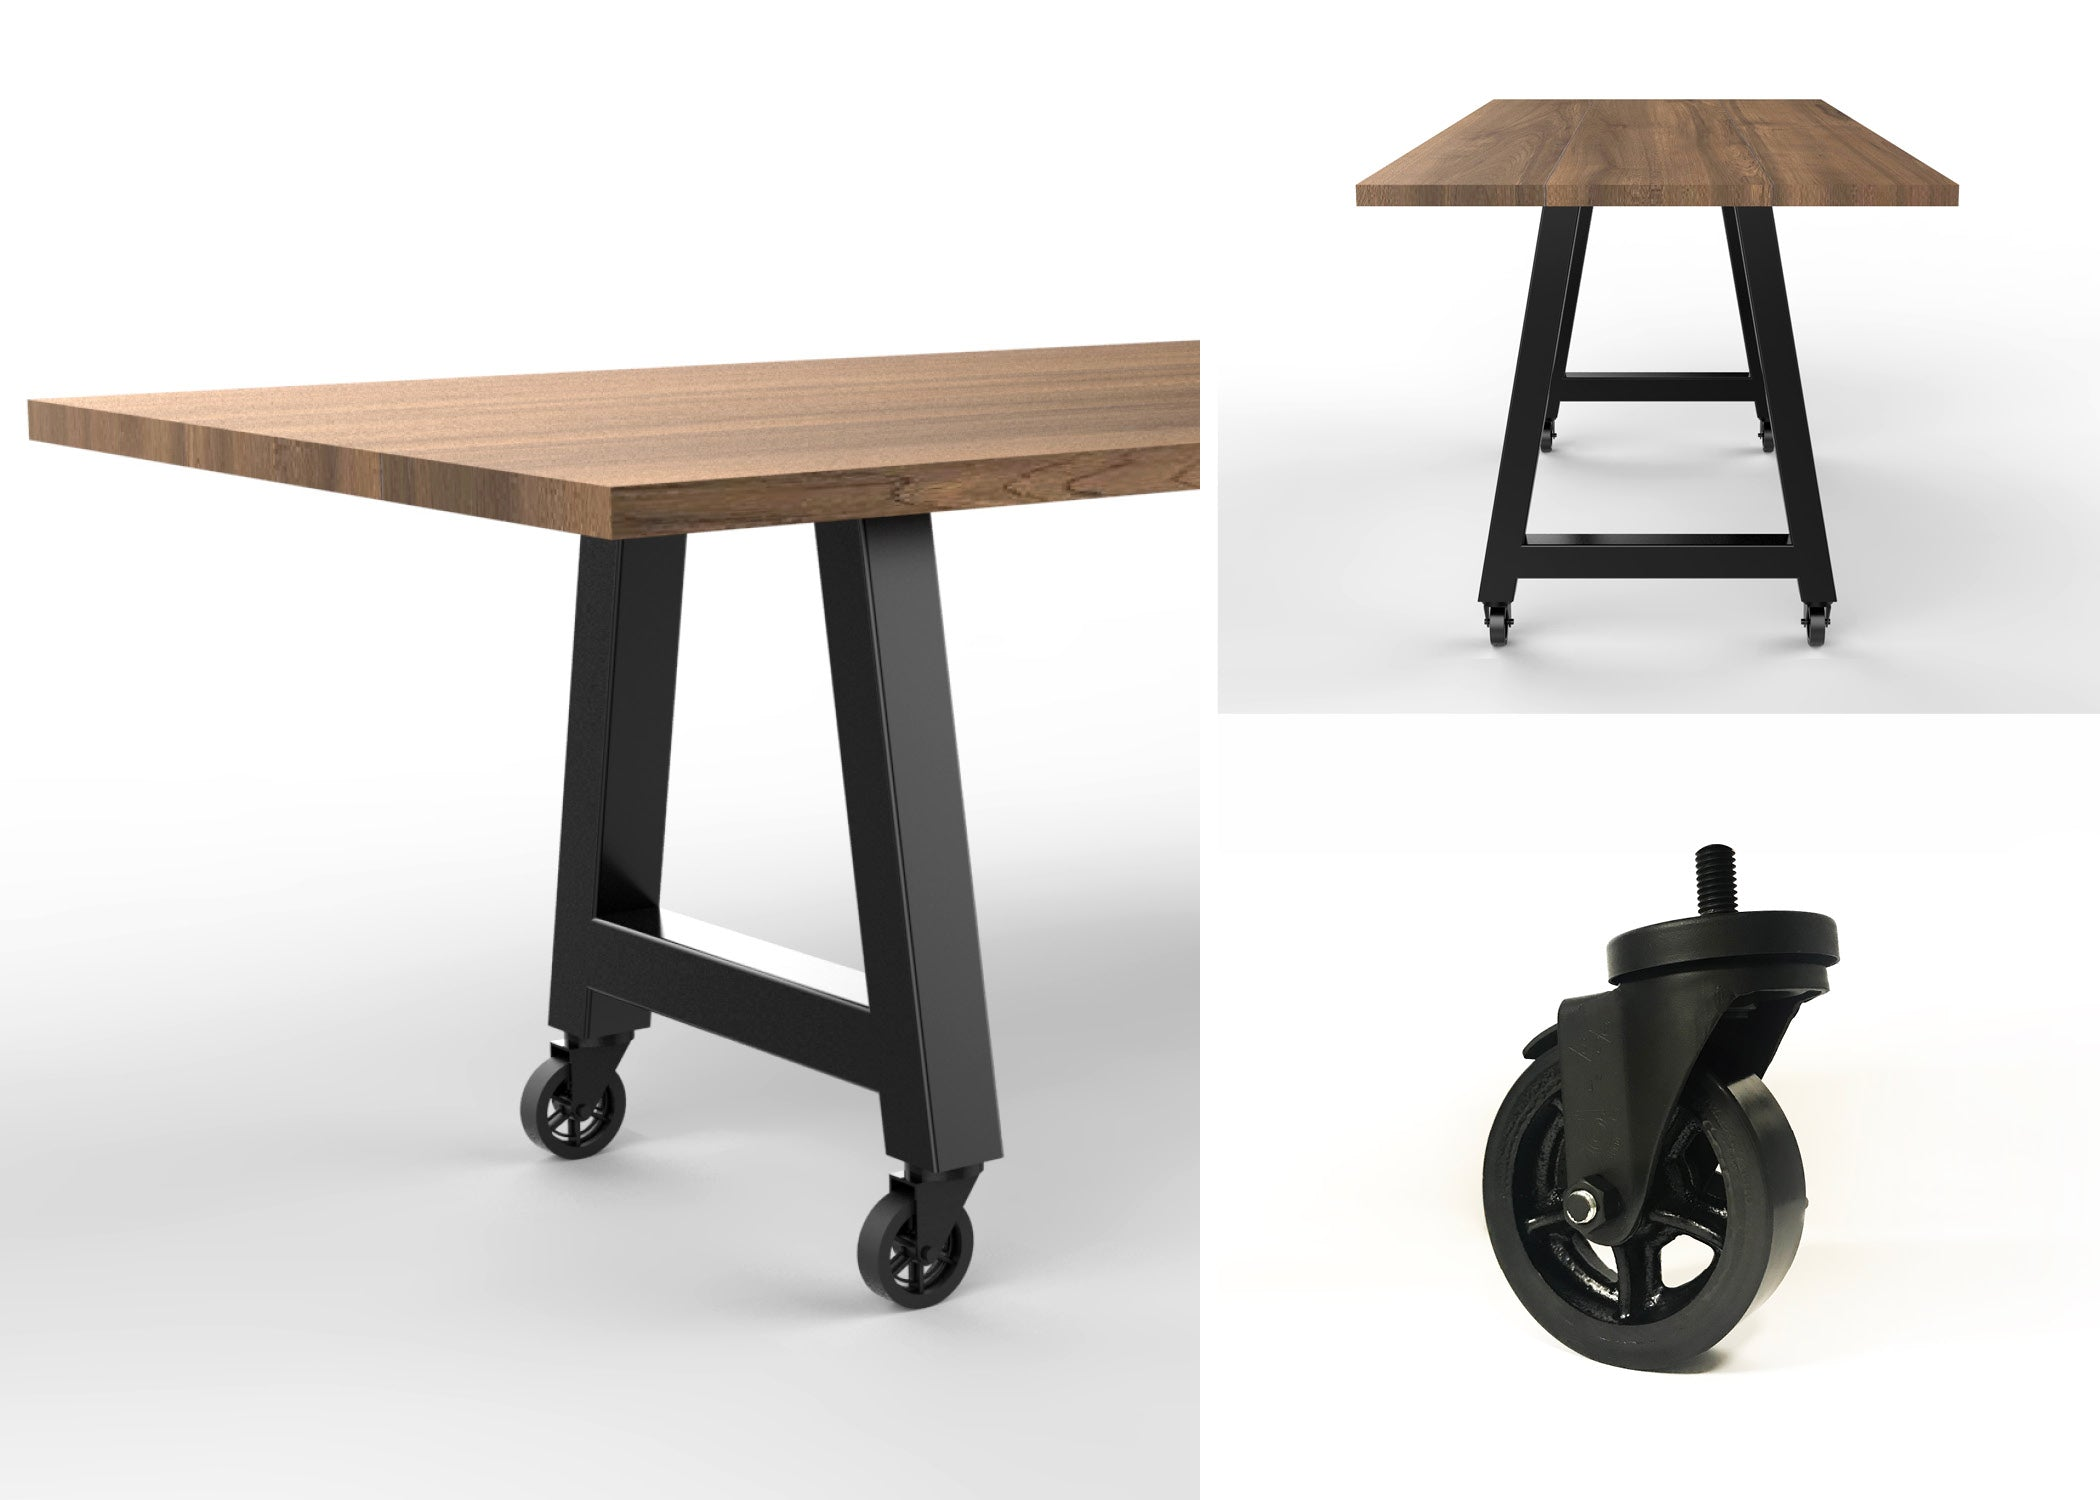 wood and metal tables with casters